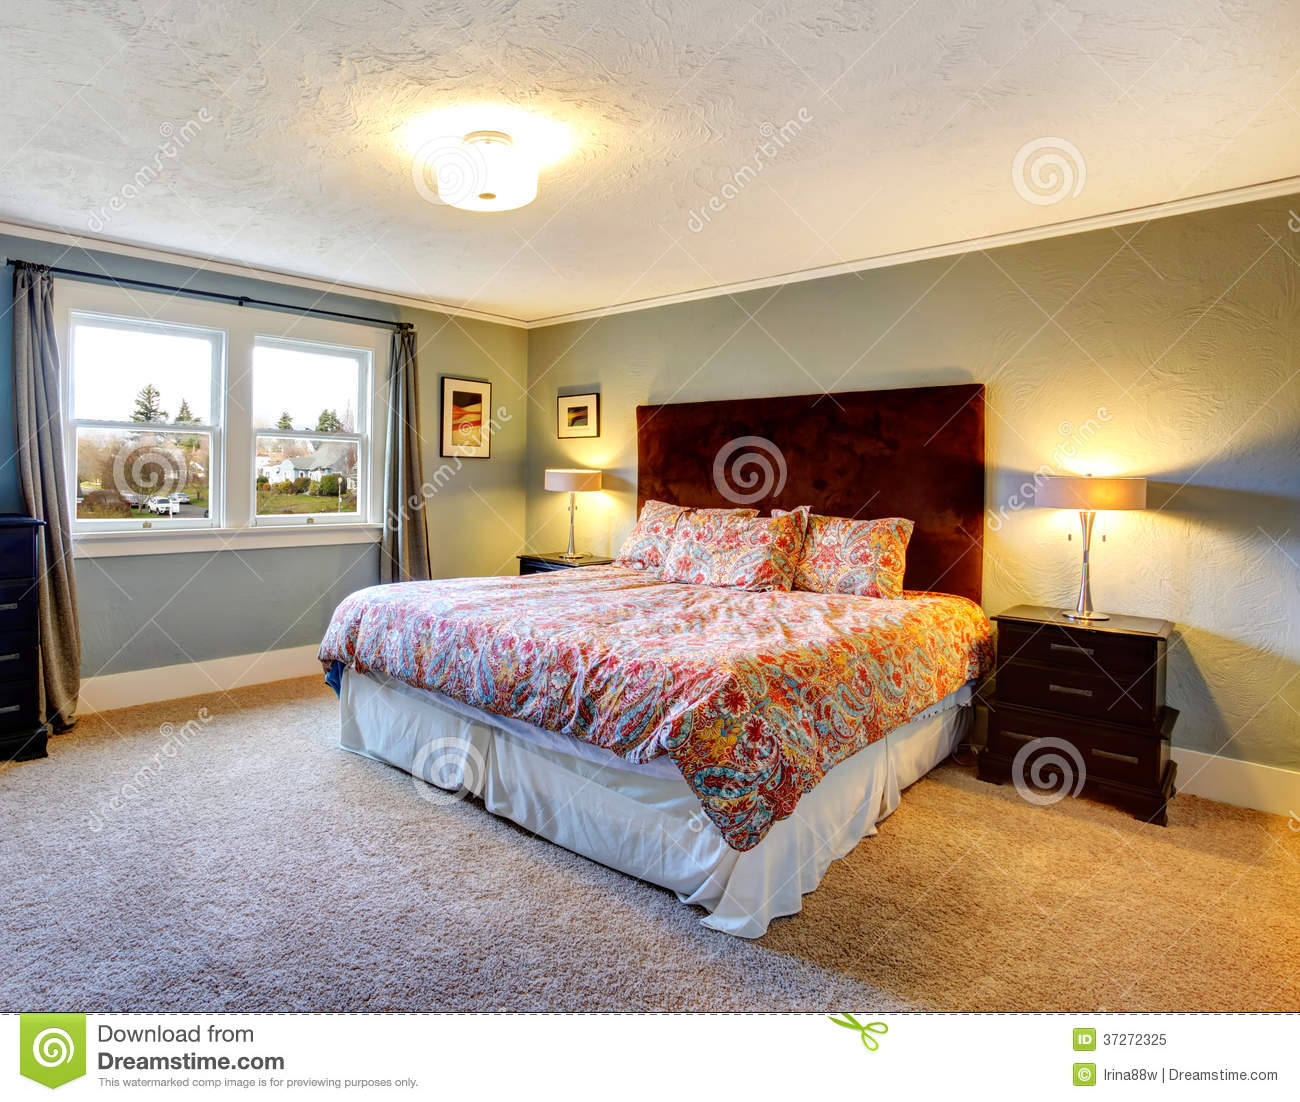 ... Bedroom With Carpeted Floor Royalty Free Stock Photo - Image: 37272325